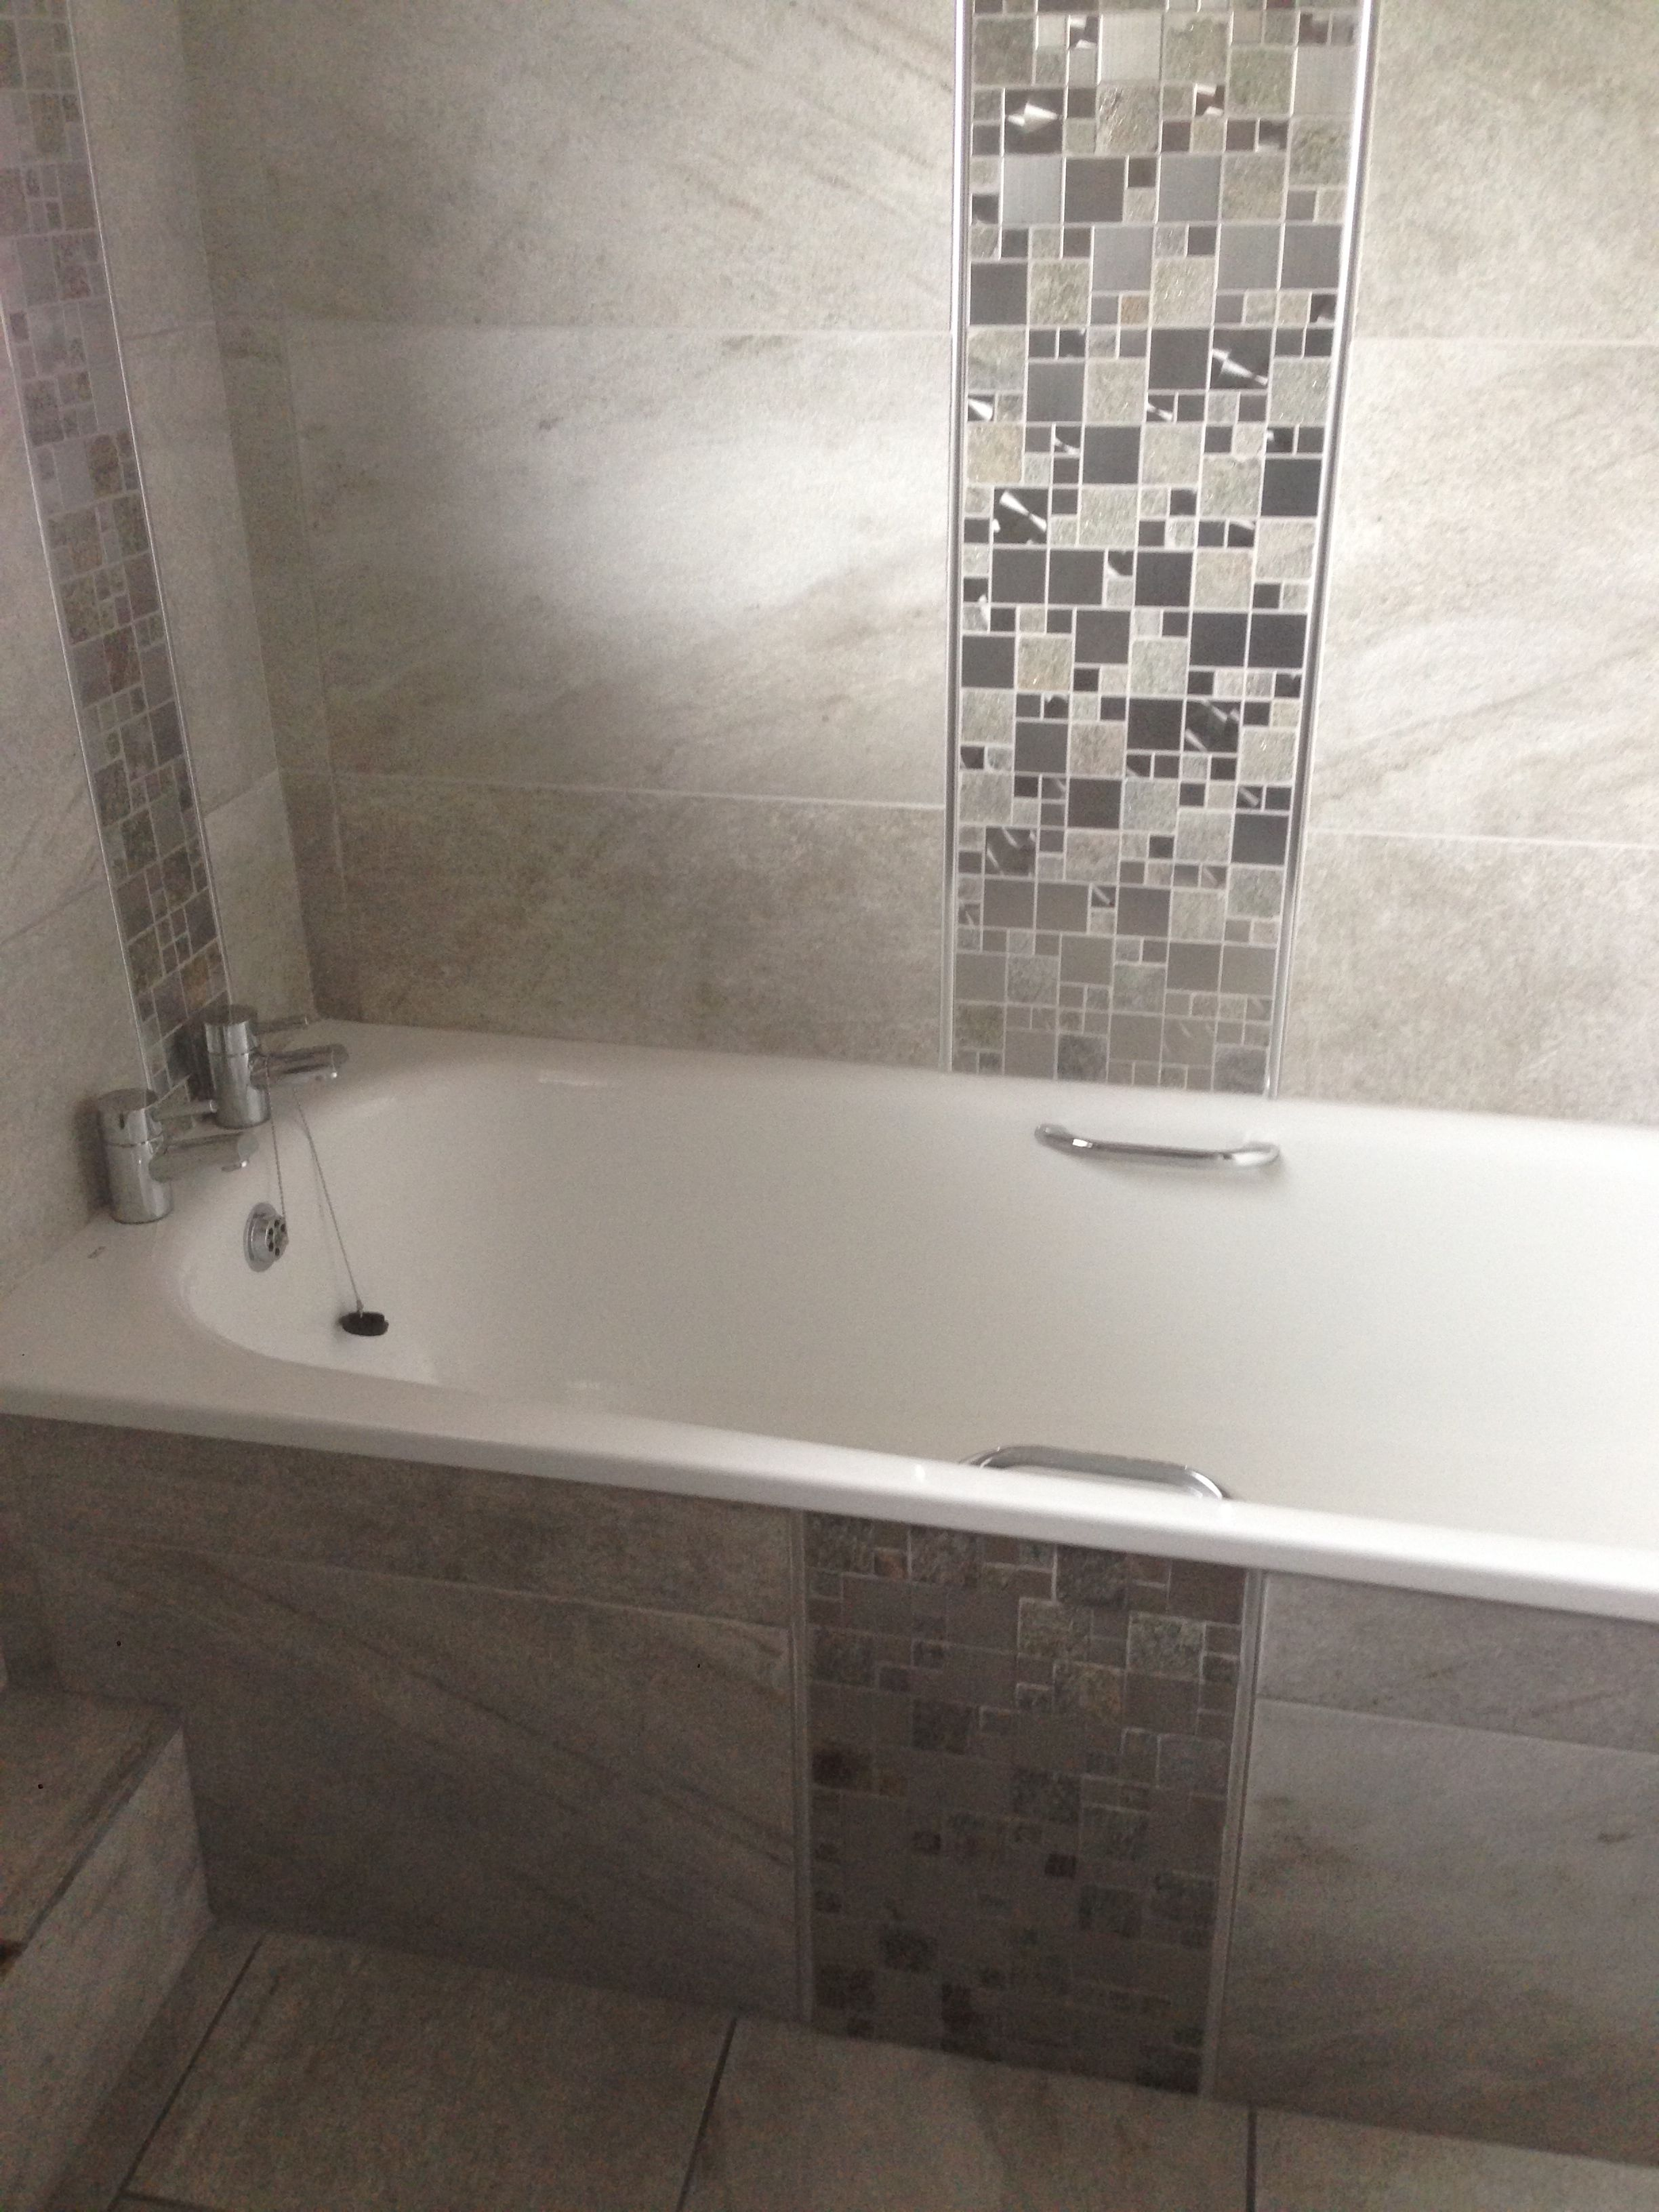 Matching Tiled Bath Panel Tiled Bath Panel Bath Panel Bathroom Feature Wall